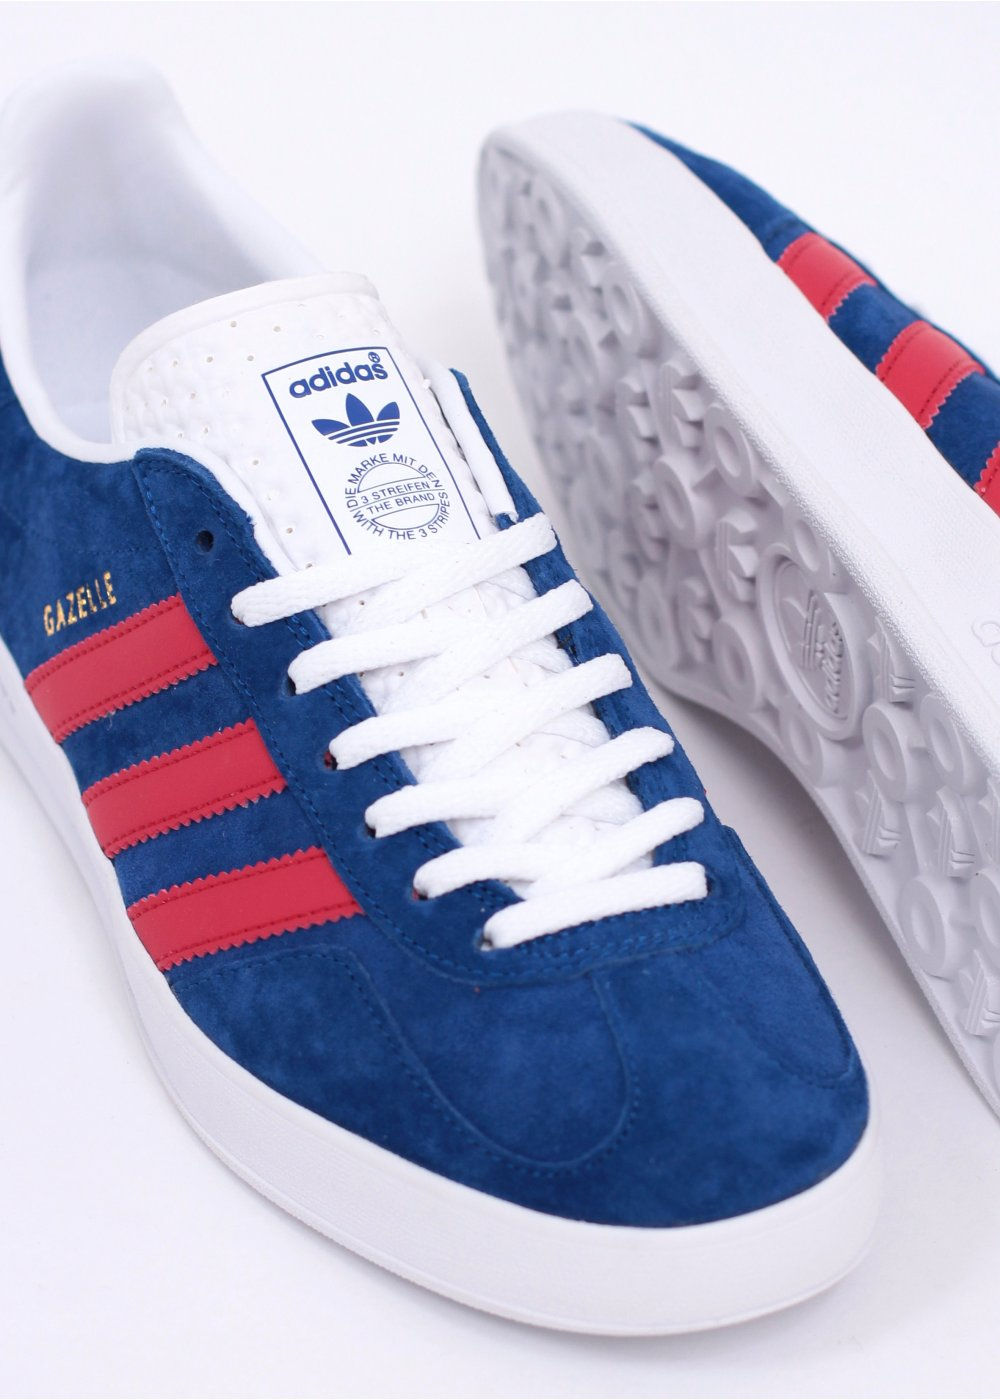 adidas gazelle indoor blue and red adidas gazelle 20 blue kids ... 5df4fdfe86e2